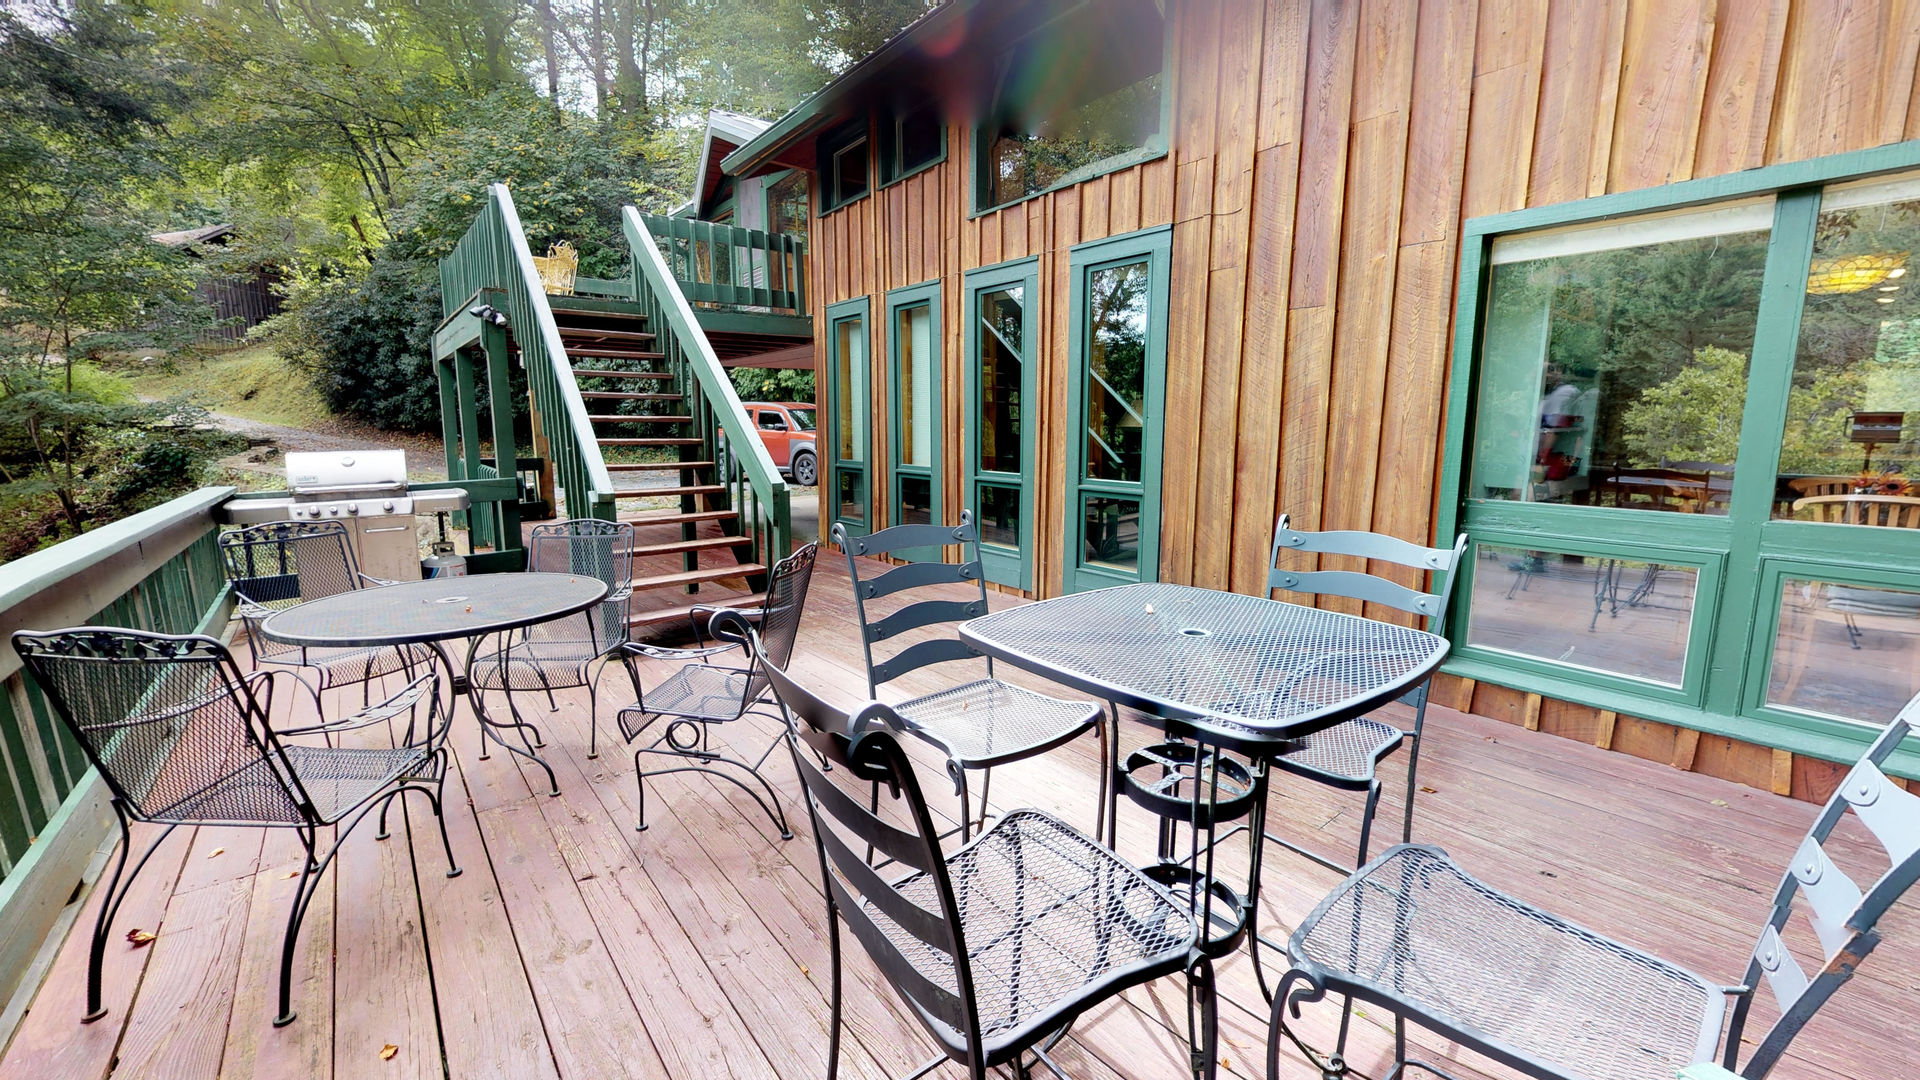 Lower deck with table and chairs